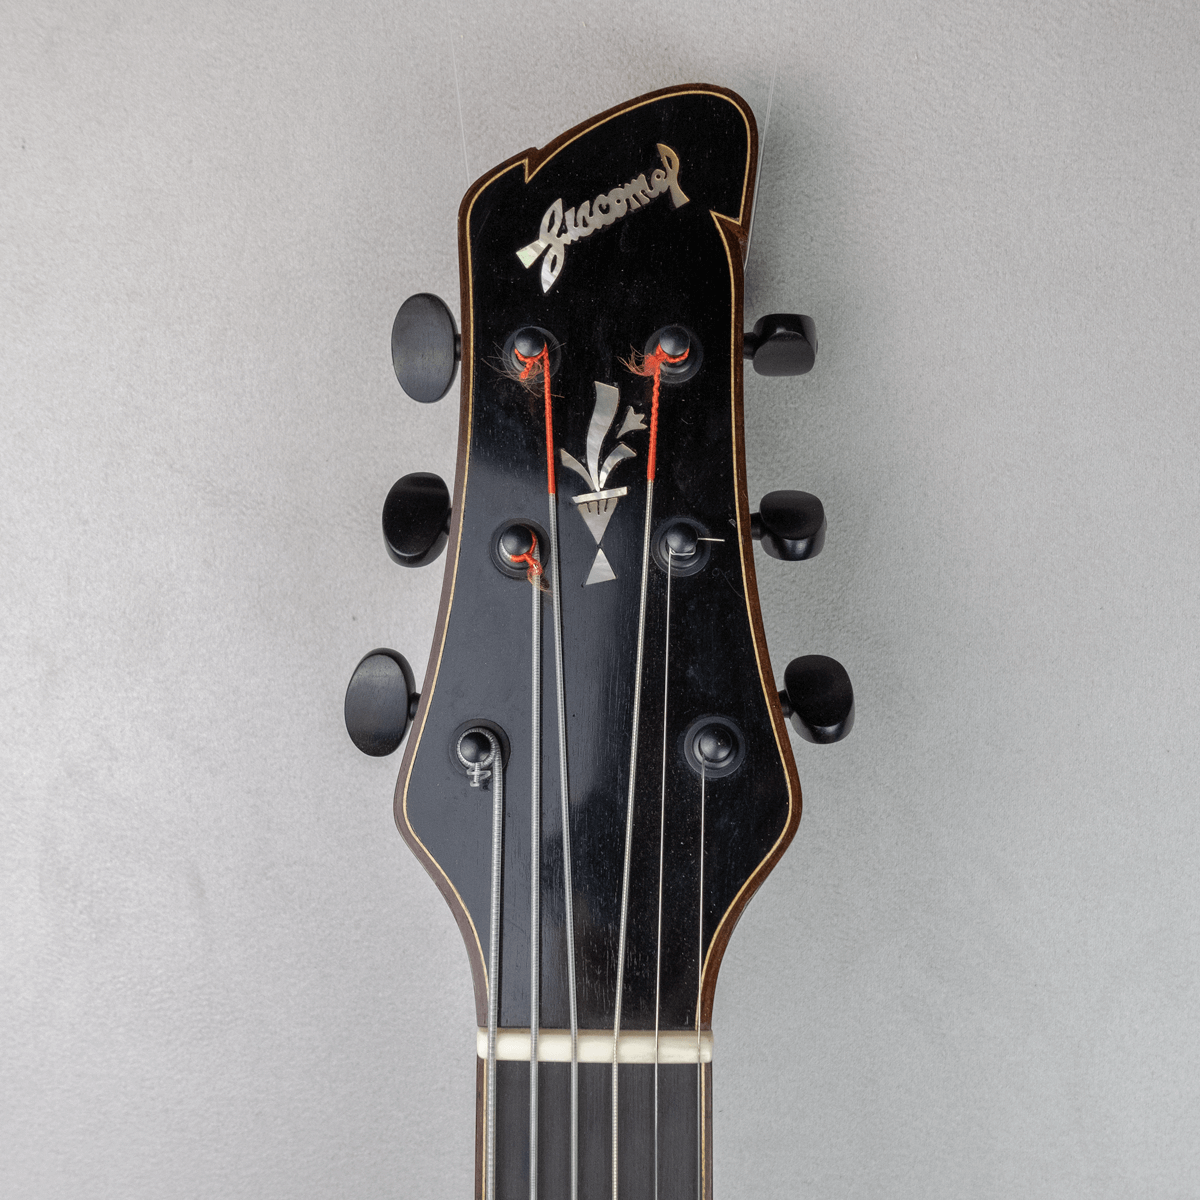 guitar jazz 5 fhole headstock